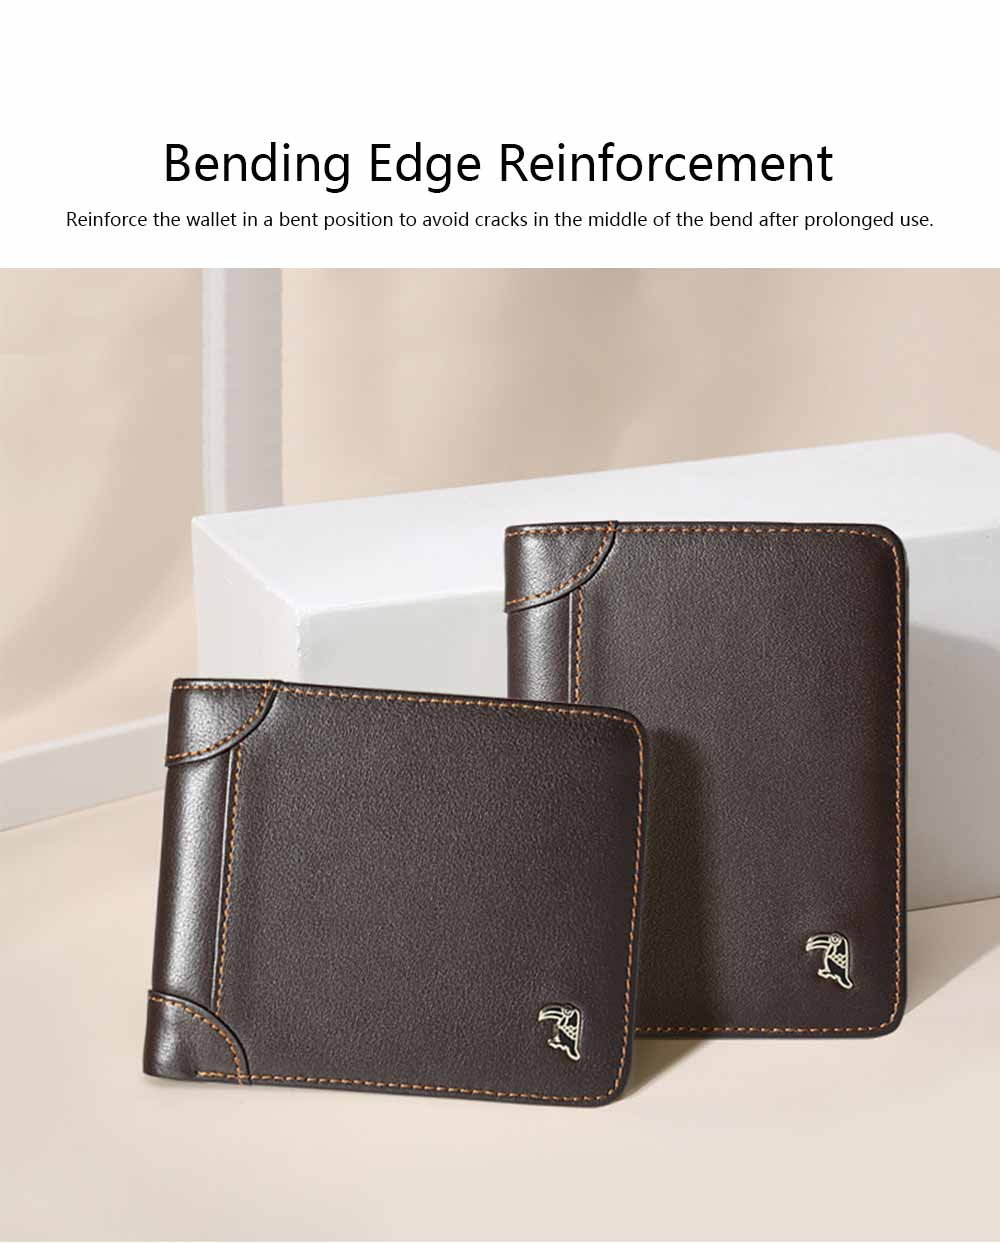 High-end Business Men Wallet, Multifunctional Wallet for Youth, Men's Leather Business Clutch Wrist Bags, Handbag Organizer Card Cash Holder 1